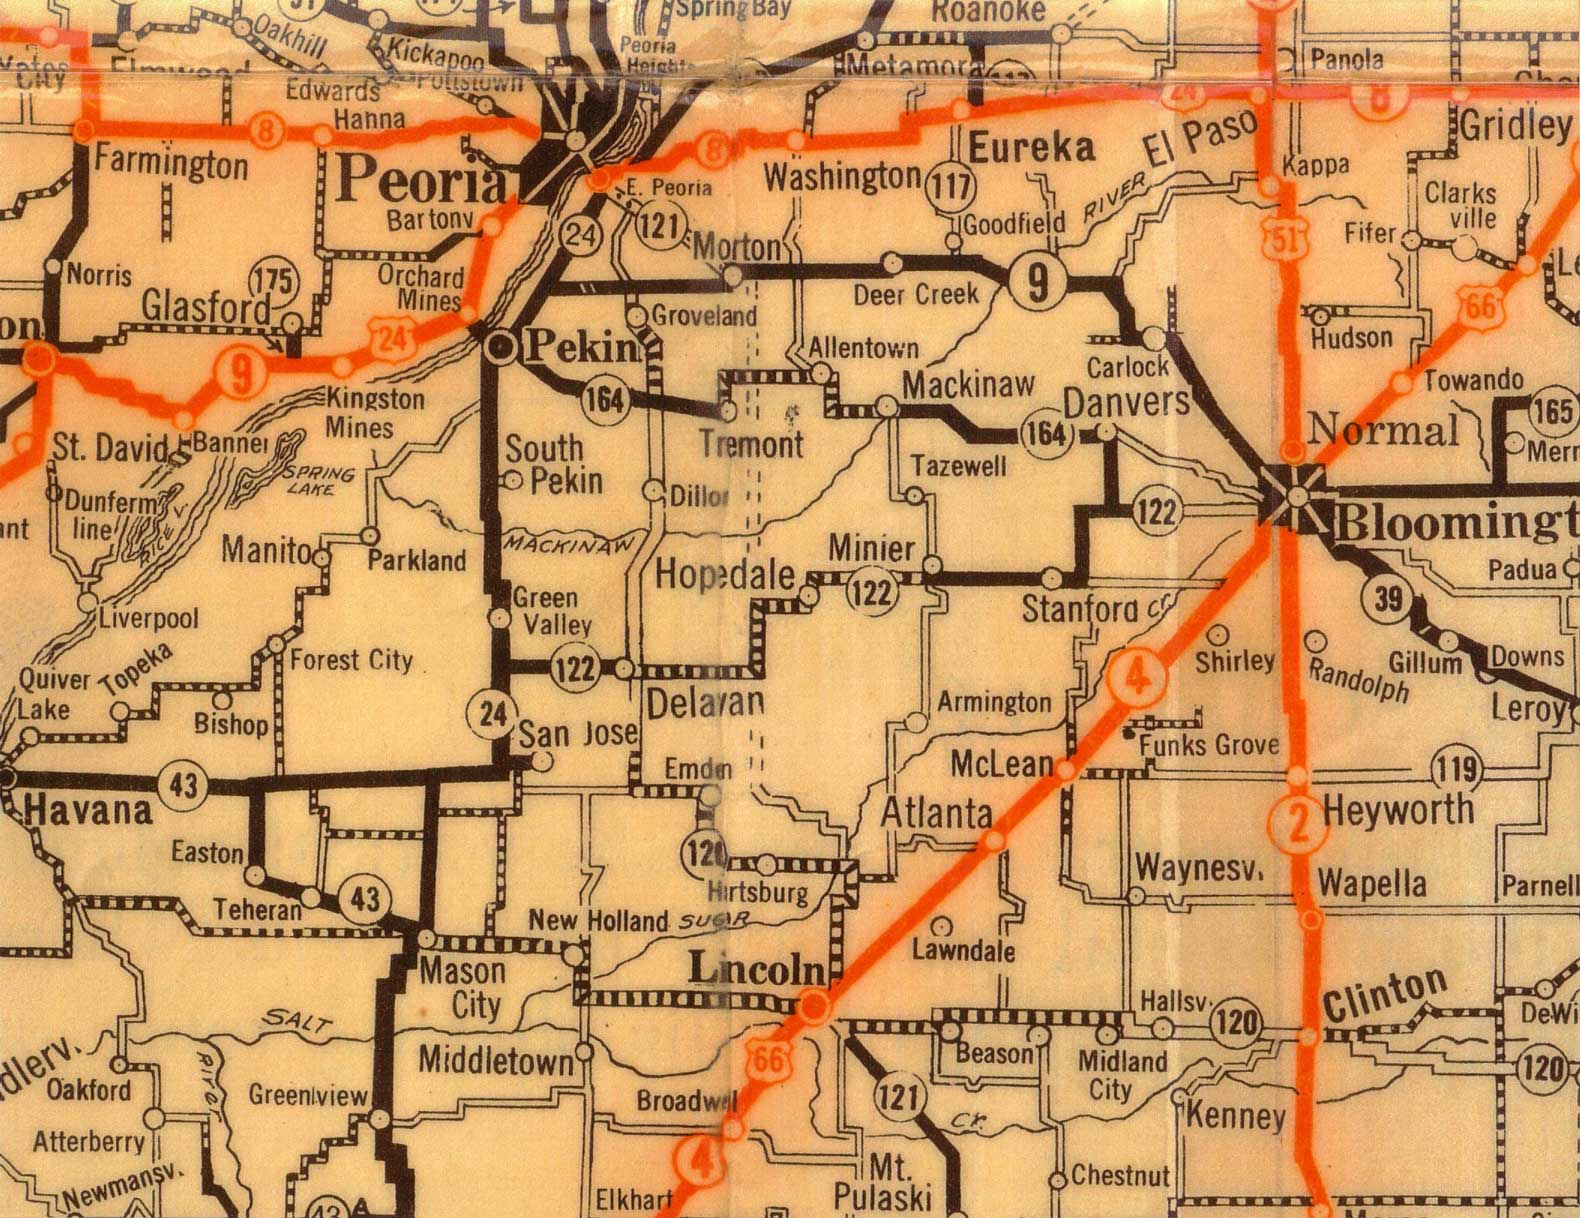 Tazewell County from 1929 Illinois Highway Map